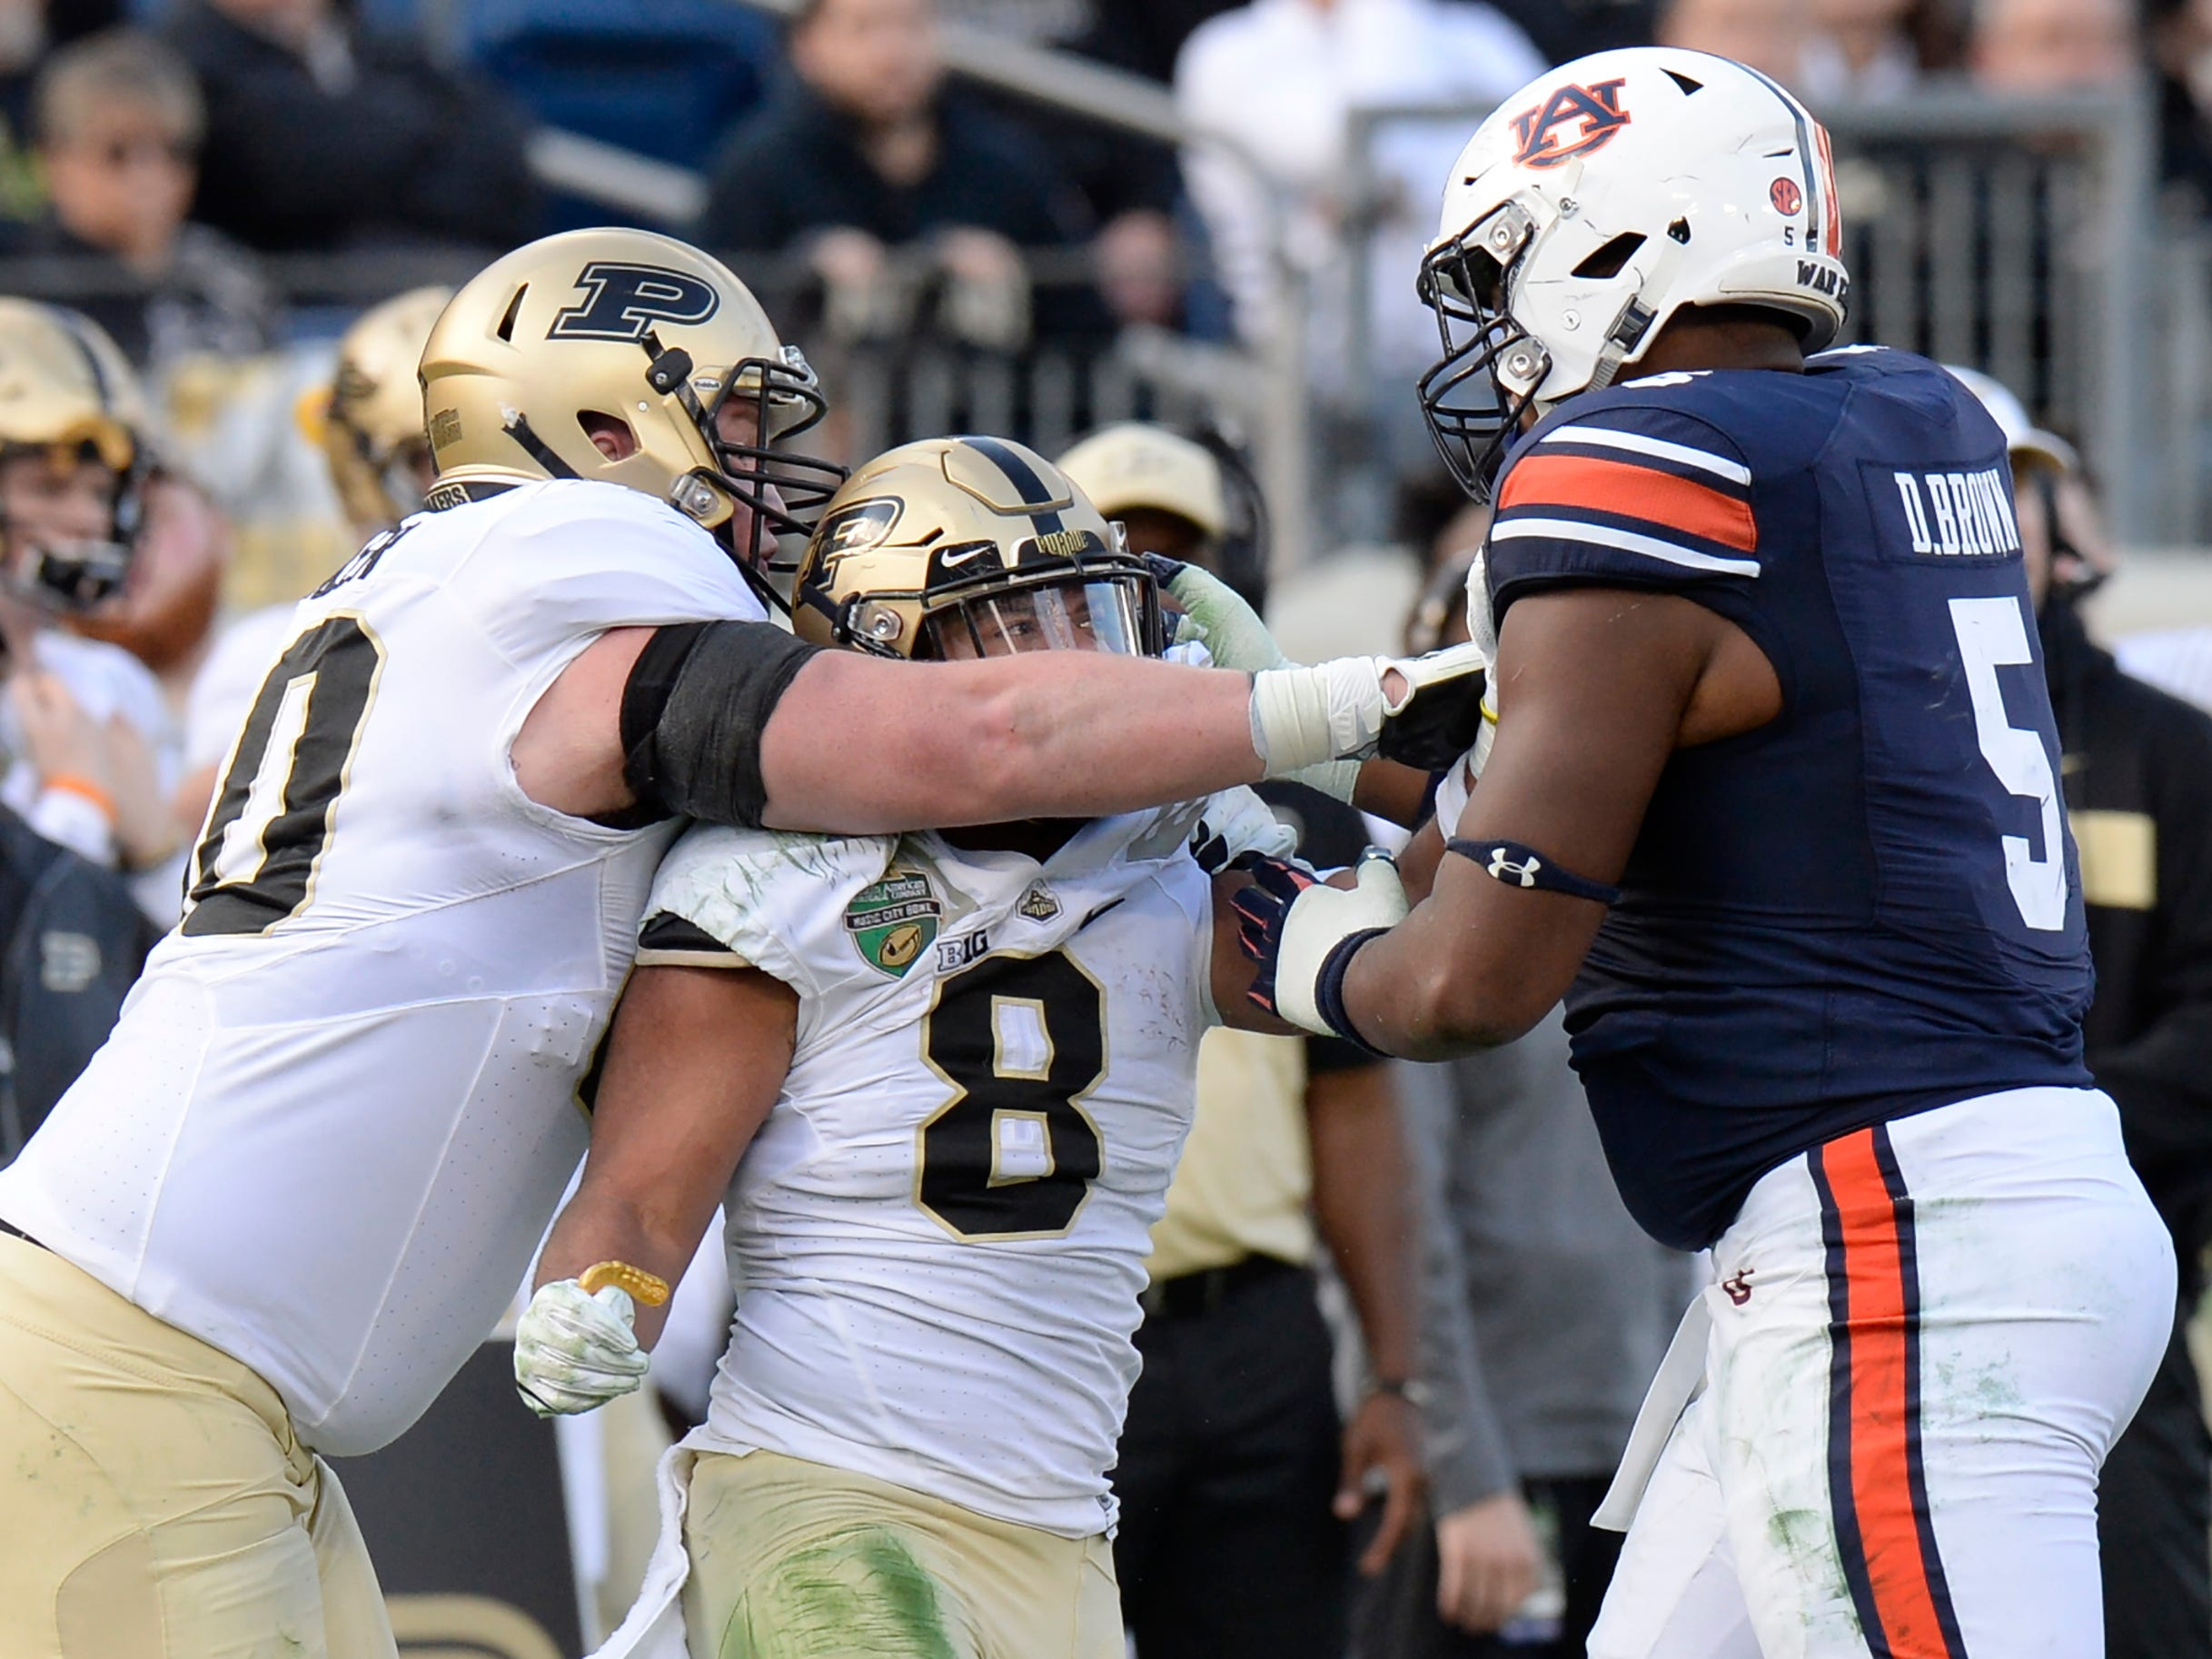 Purdue offensive lineman Will Bramel (70) and running back Markell Jones (8) mix it up with Auburn defensive lineman Derrick Brown (5) in the second quarter of the Music City Bowl NCAA college football game Friday, Dec. 28, 2018, at Nissan Stadium in Nashville, Tenn.